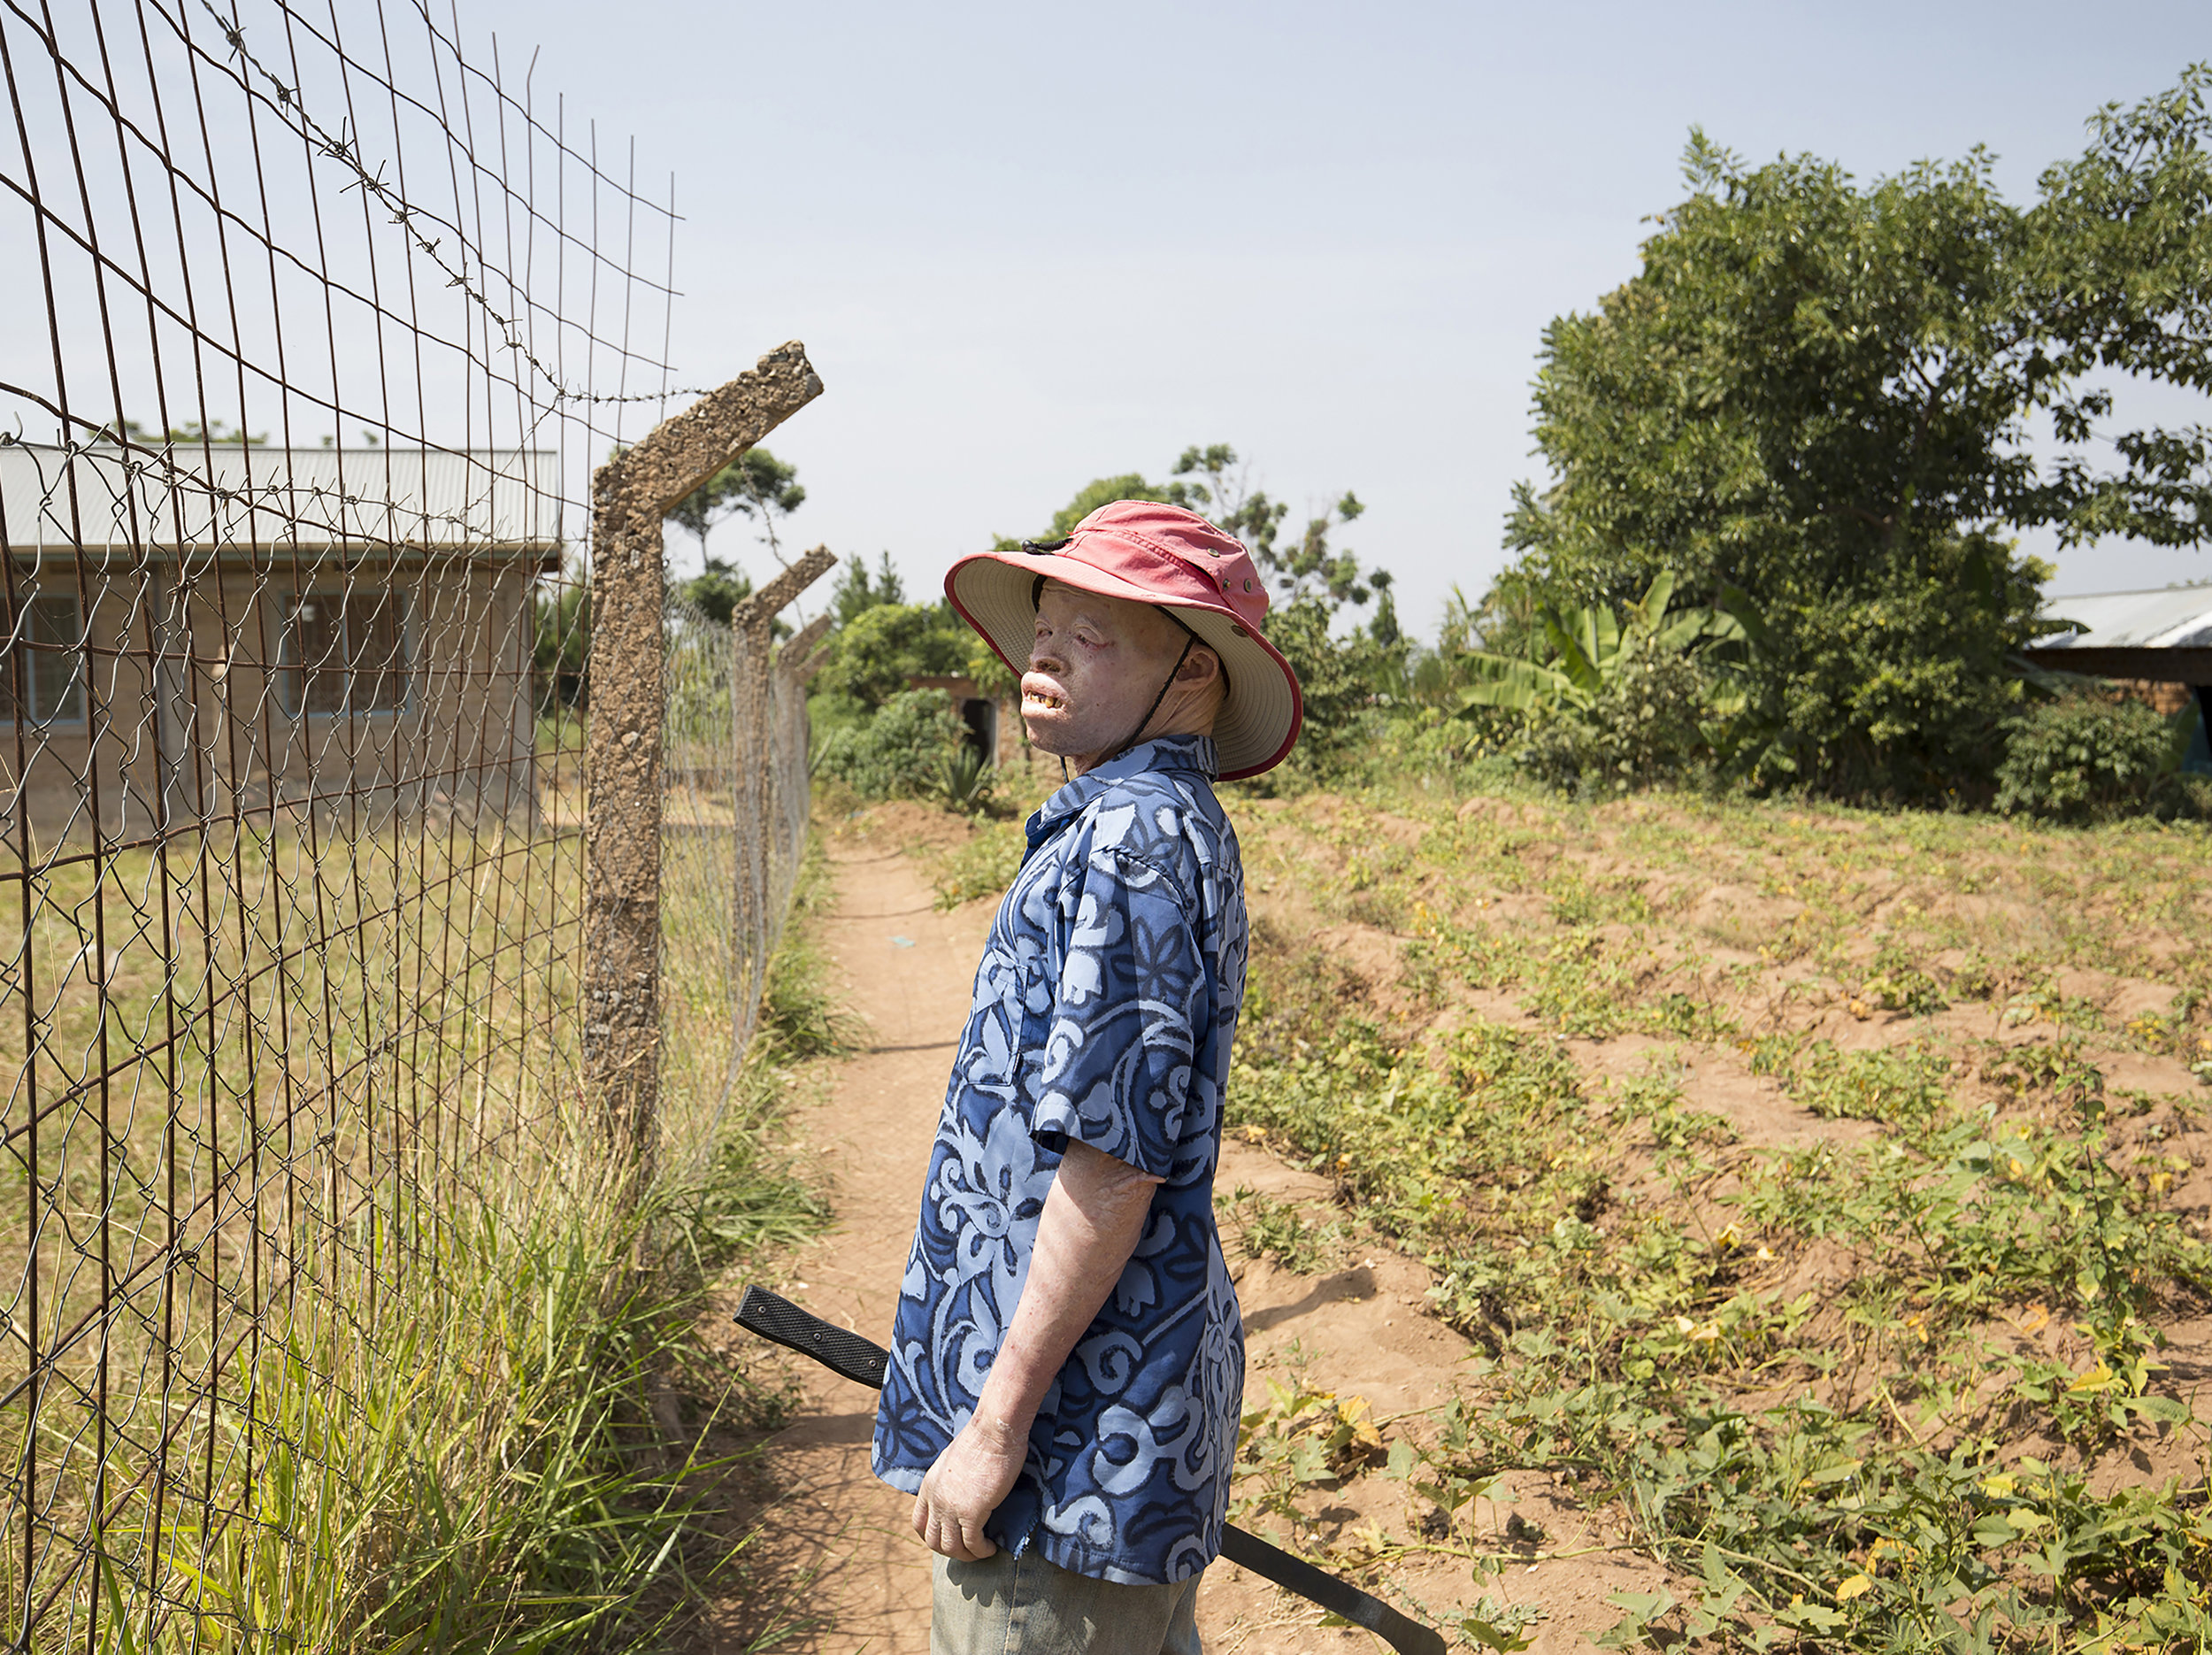 Tanzania's government has responded by placing hundreds of people with albinism in protectorate centres around the country for their safety. These centres are understaffed, with poor sanitation and inadequate educational infrastructure.